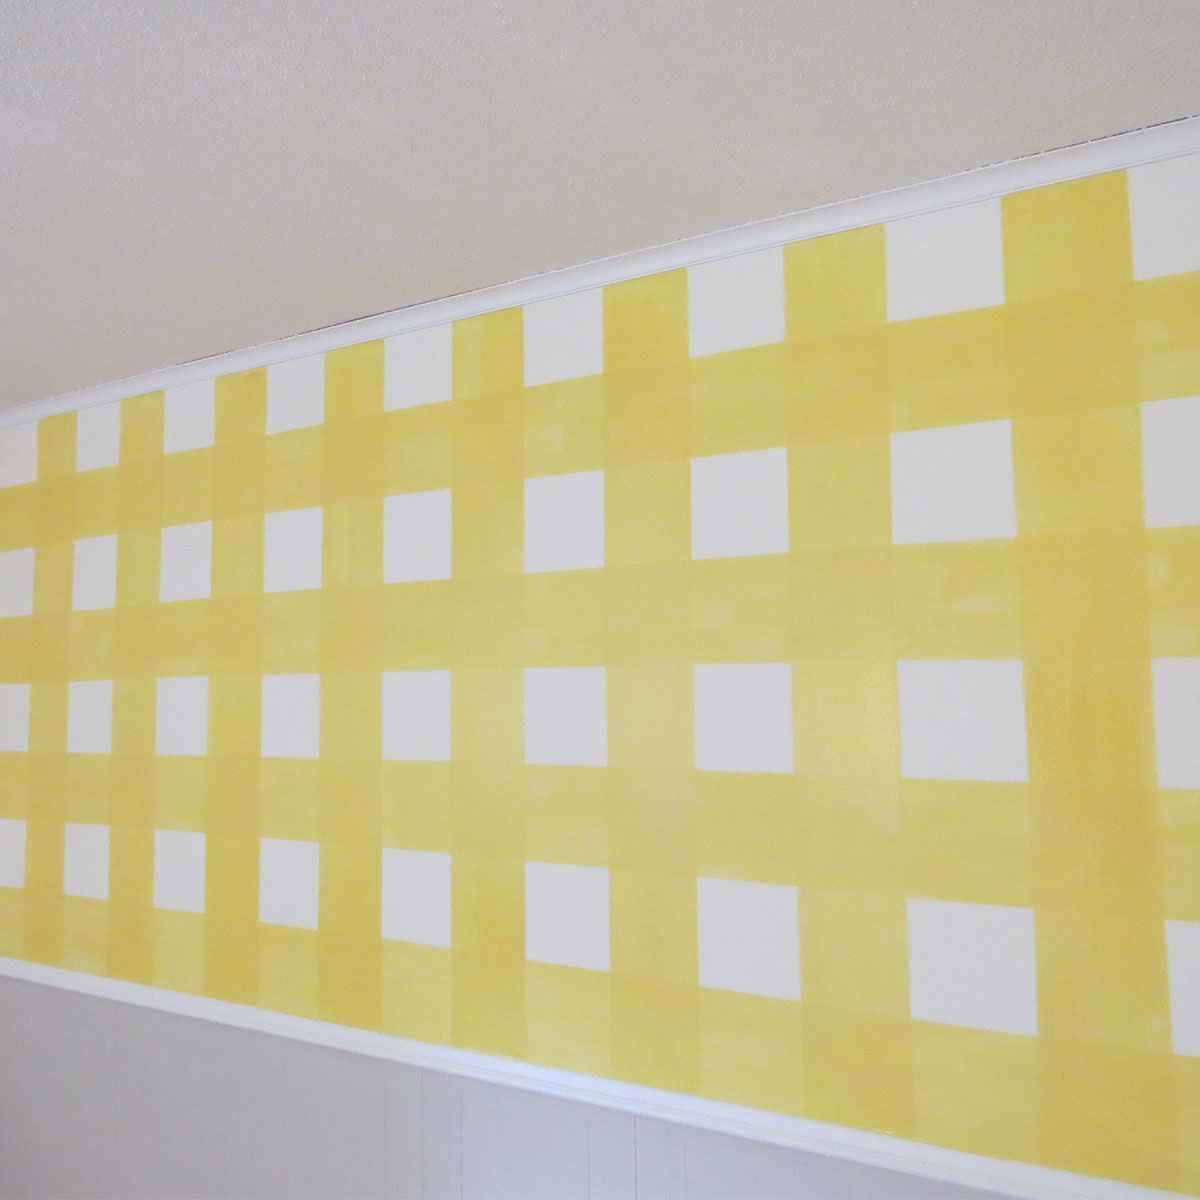 How To Paint a Gingham Wall | Gingham, Painting techniques and ...